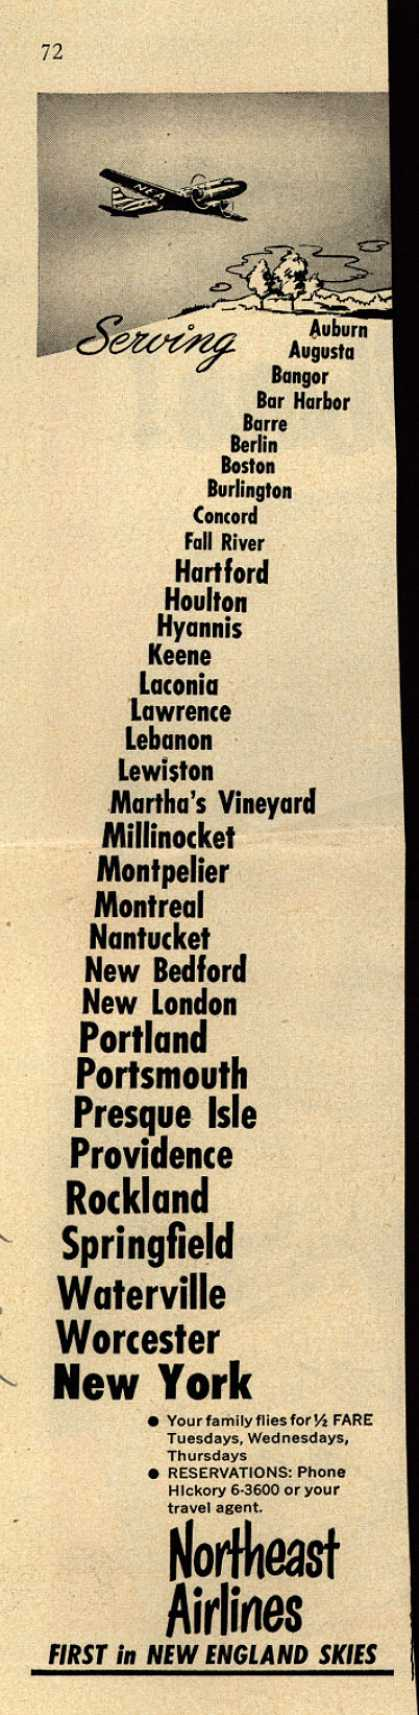 Northeast Airline's New England Destinations – Serving... (1951)